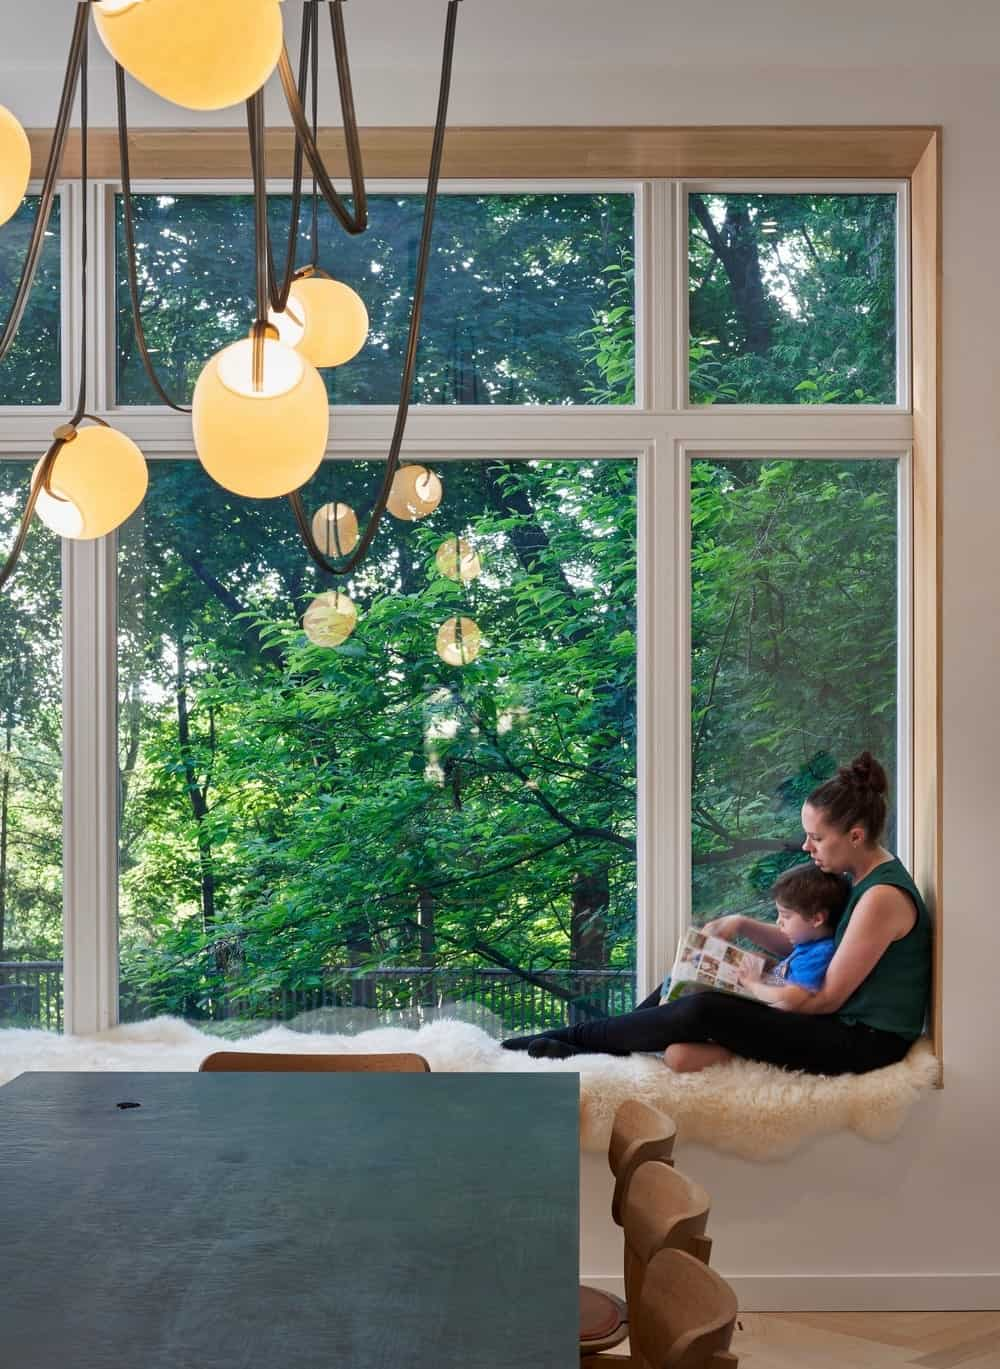 Dining room with window seat in the Baby Point Residence by designed Batay-Csorba Architects.